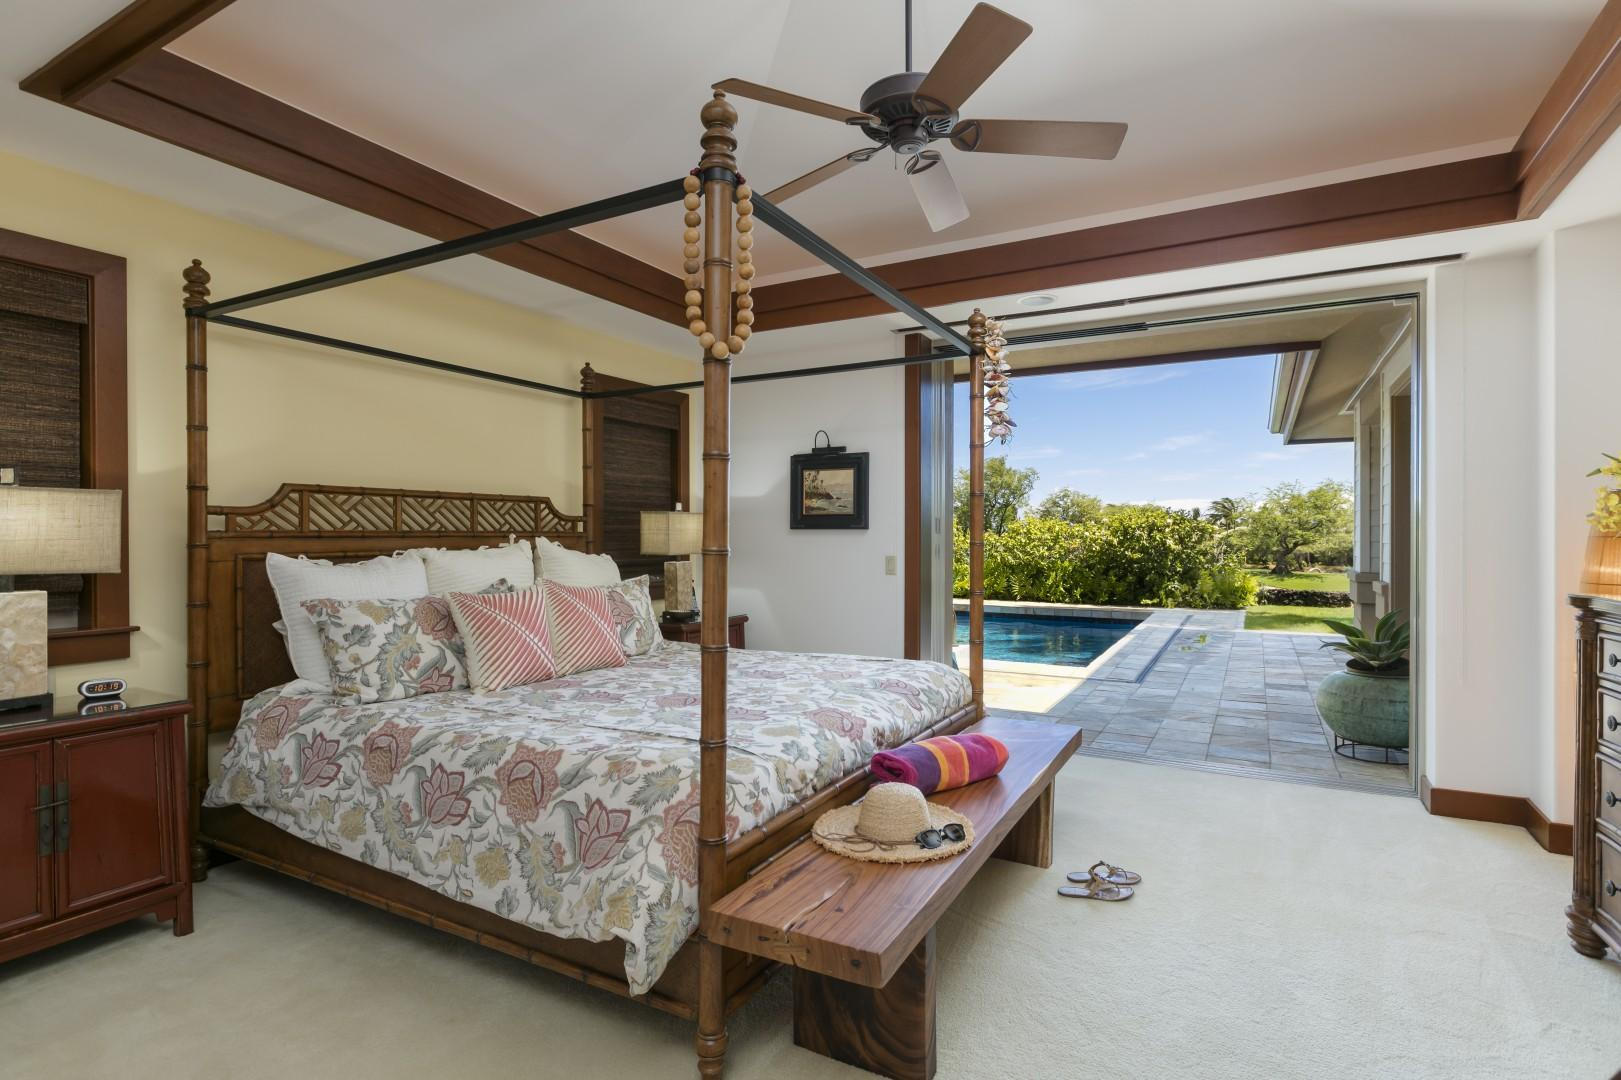 Master Bedroom Suite with KING BED with access to the heated spa and pool.